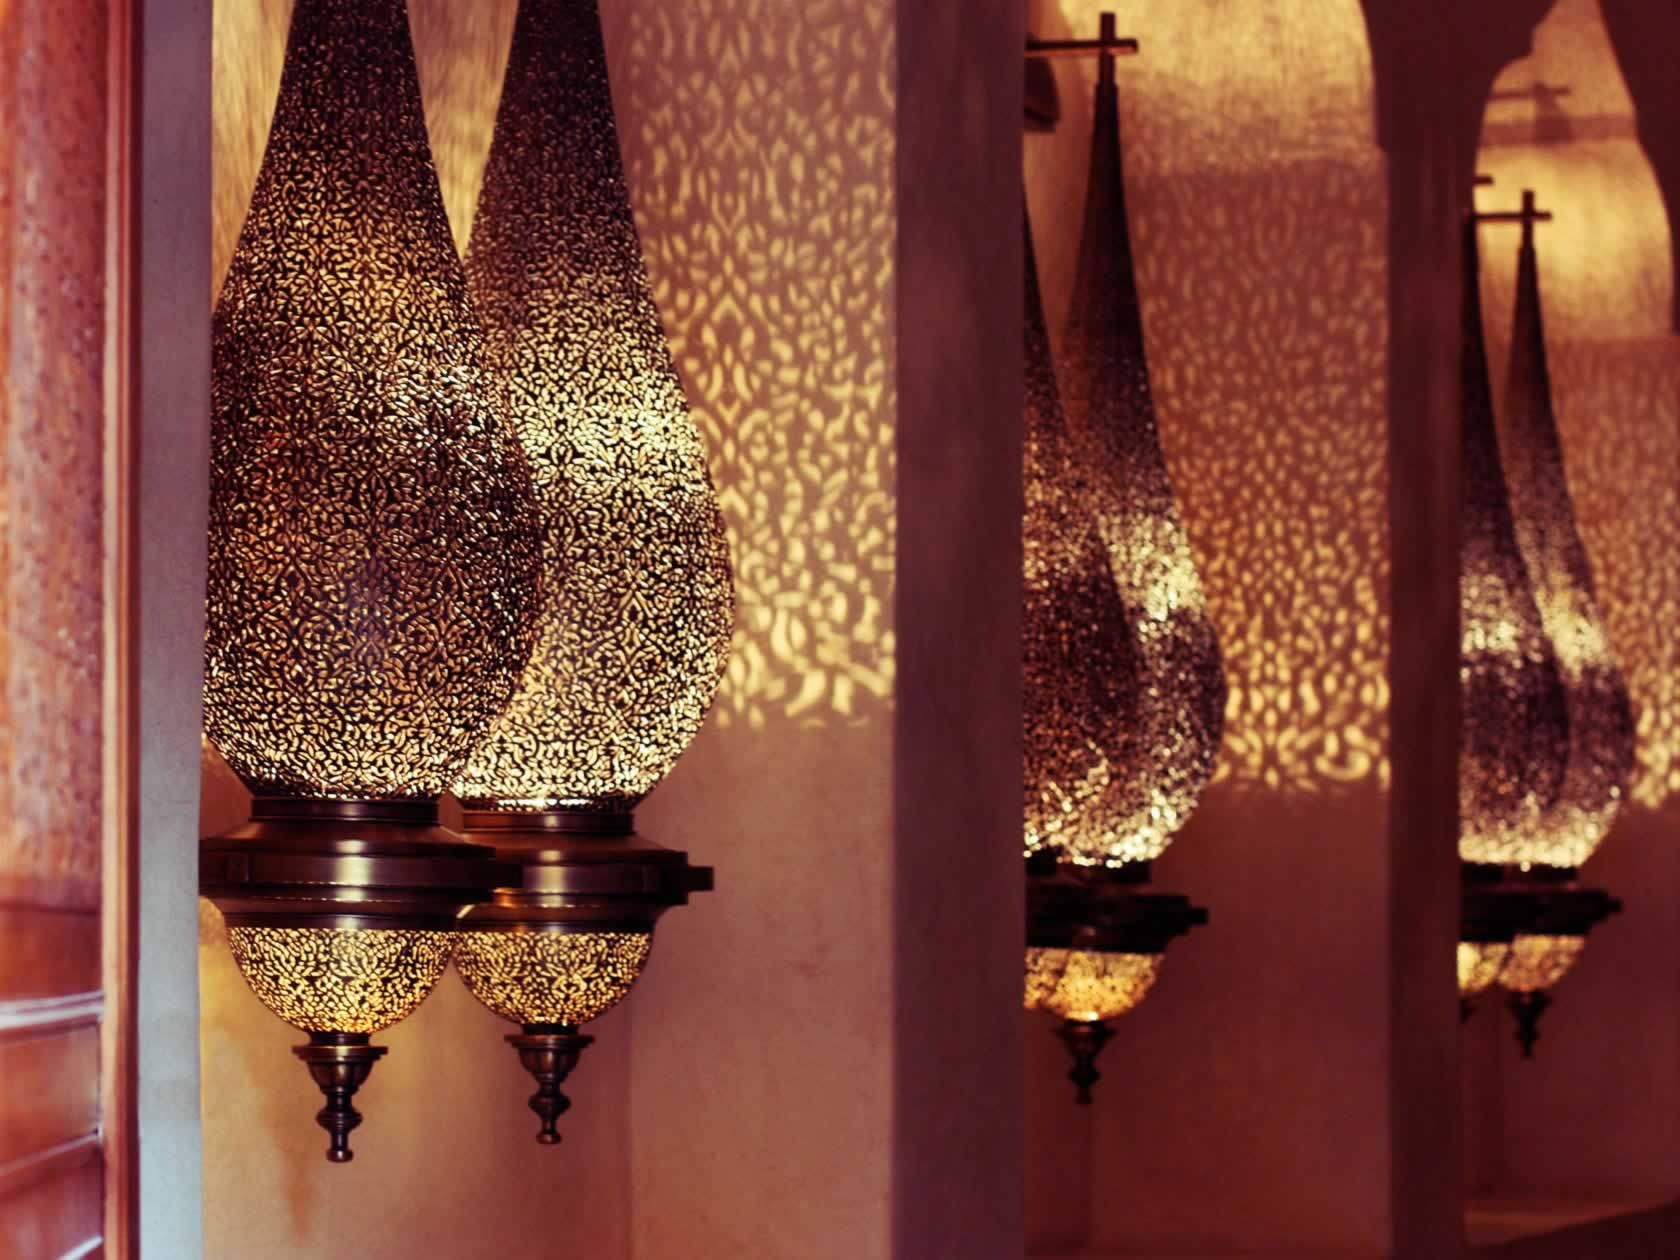 La maison arabe marrakech fais toi la belle - Decoration arabe maison ...